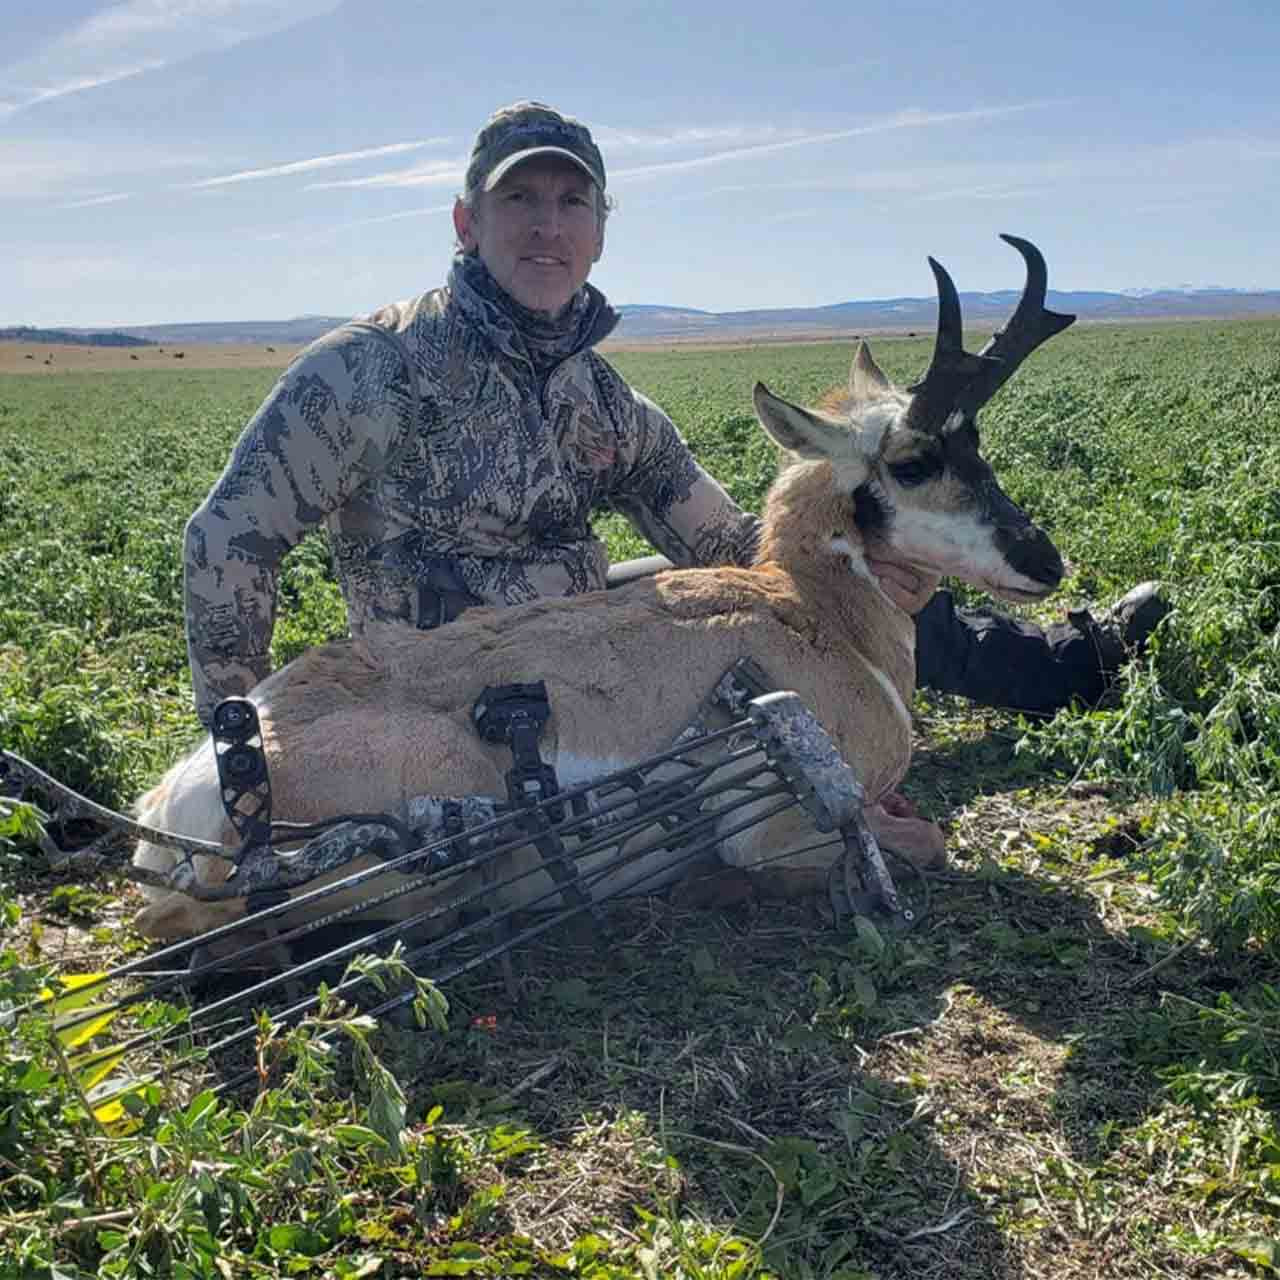 Archery antelope hunt in Montana with Anchor P Outfitters